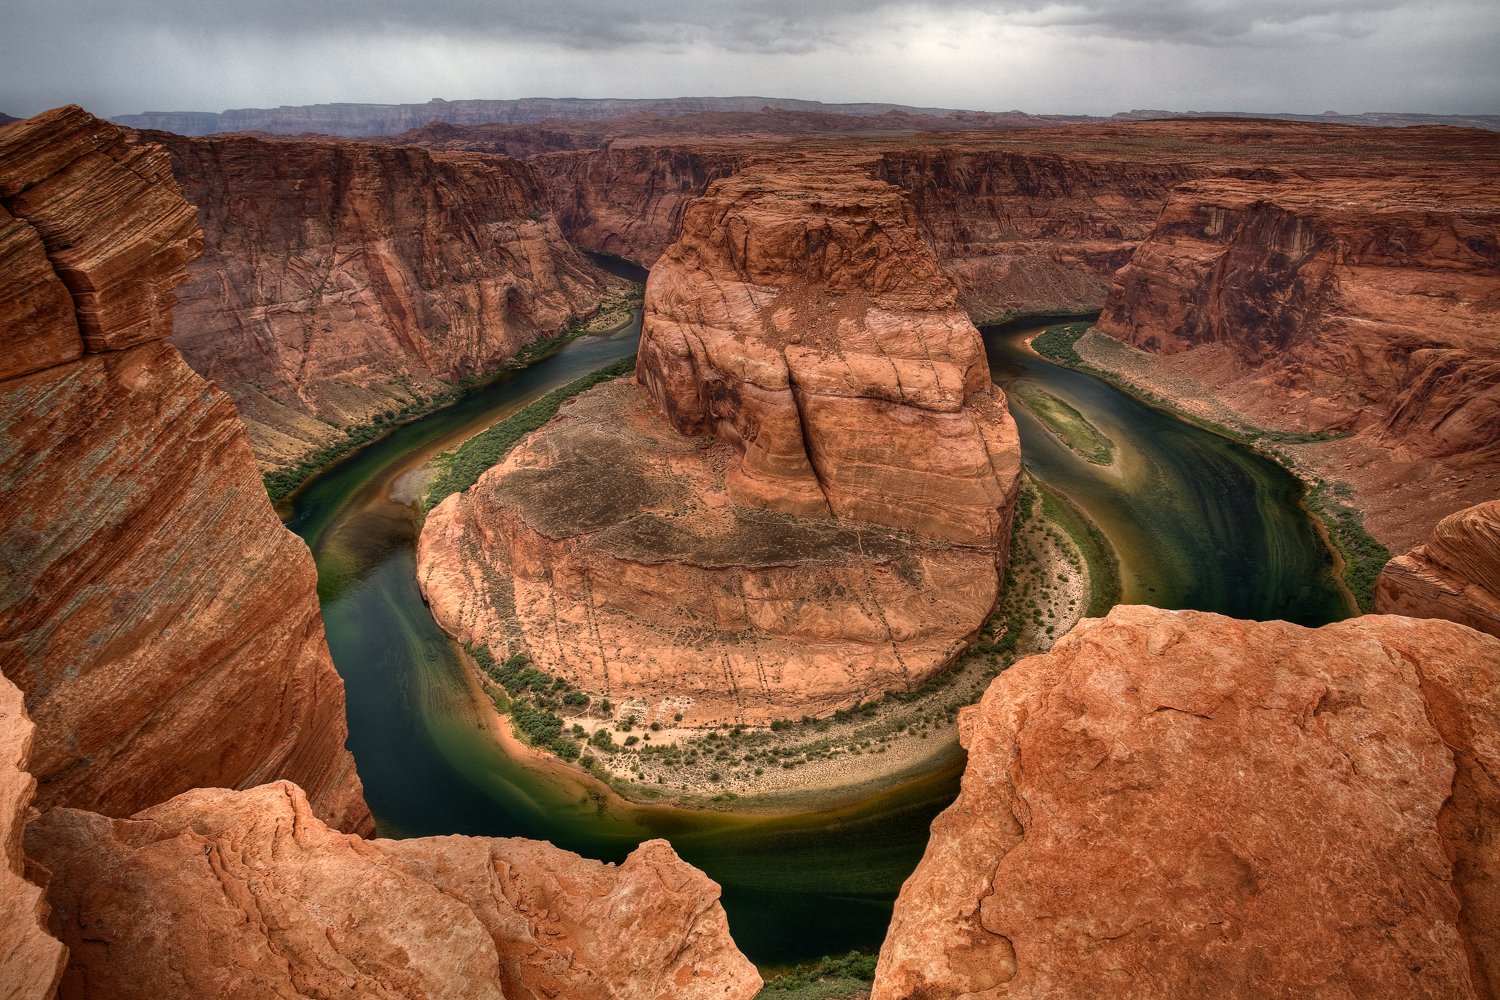 Rainy morning landscape view at Horseshoe Bend